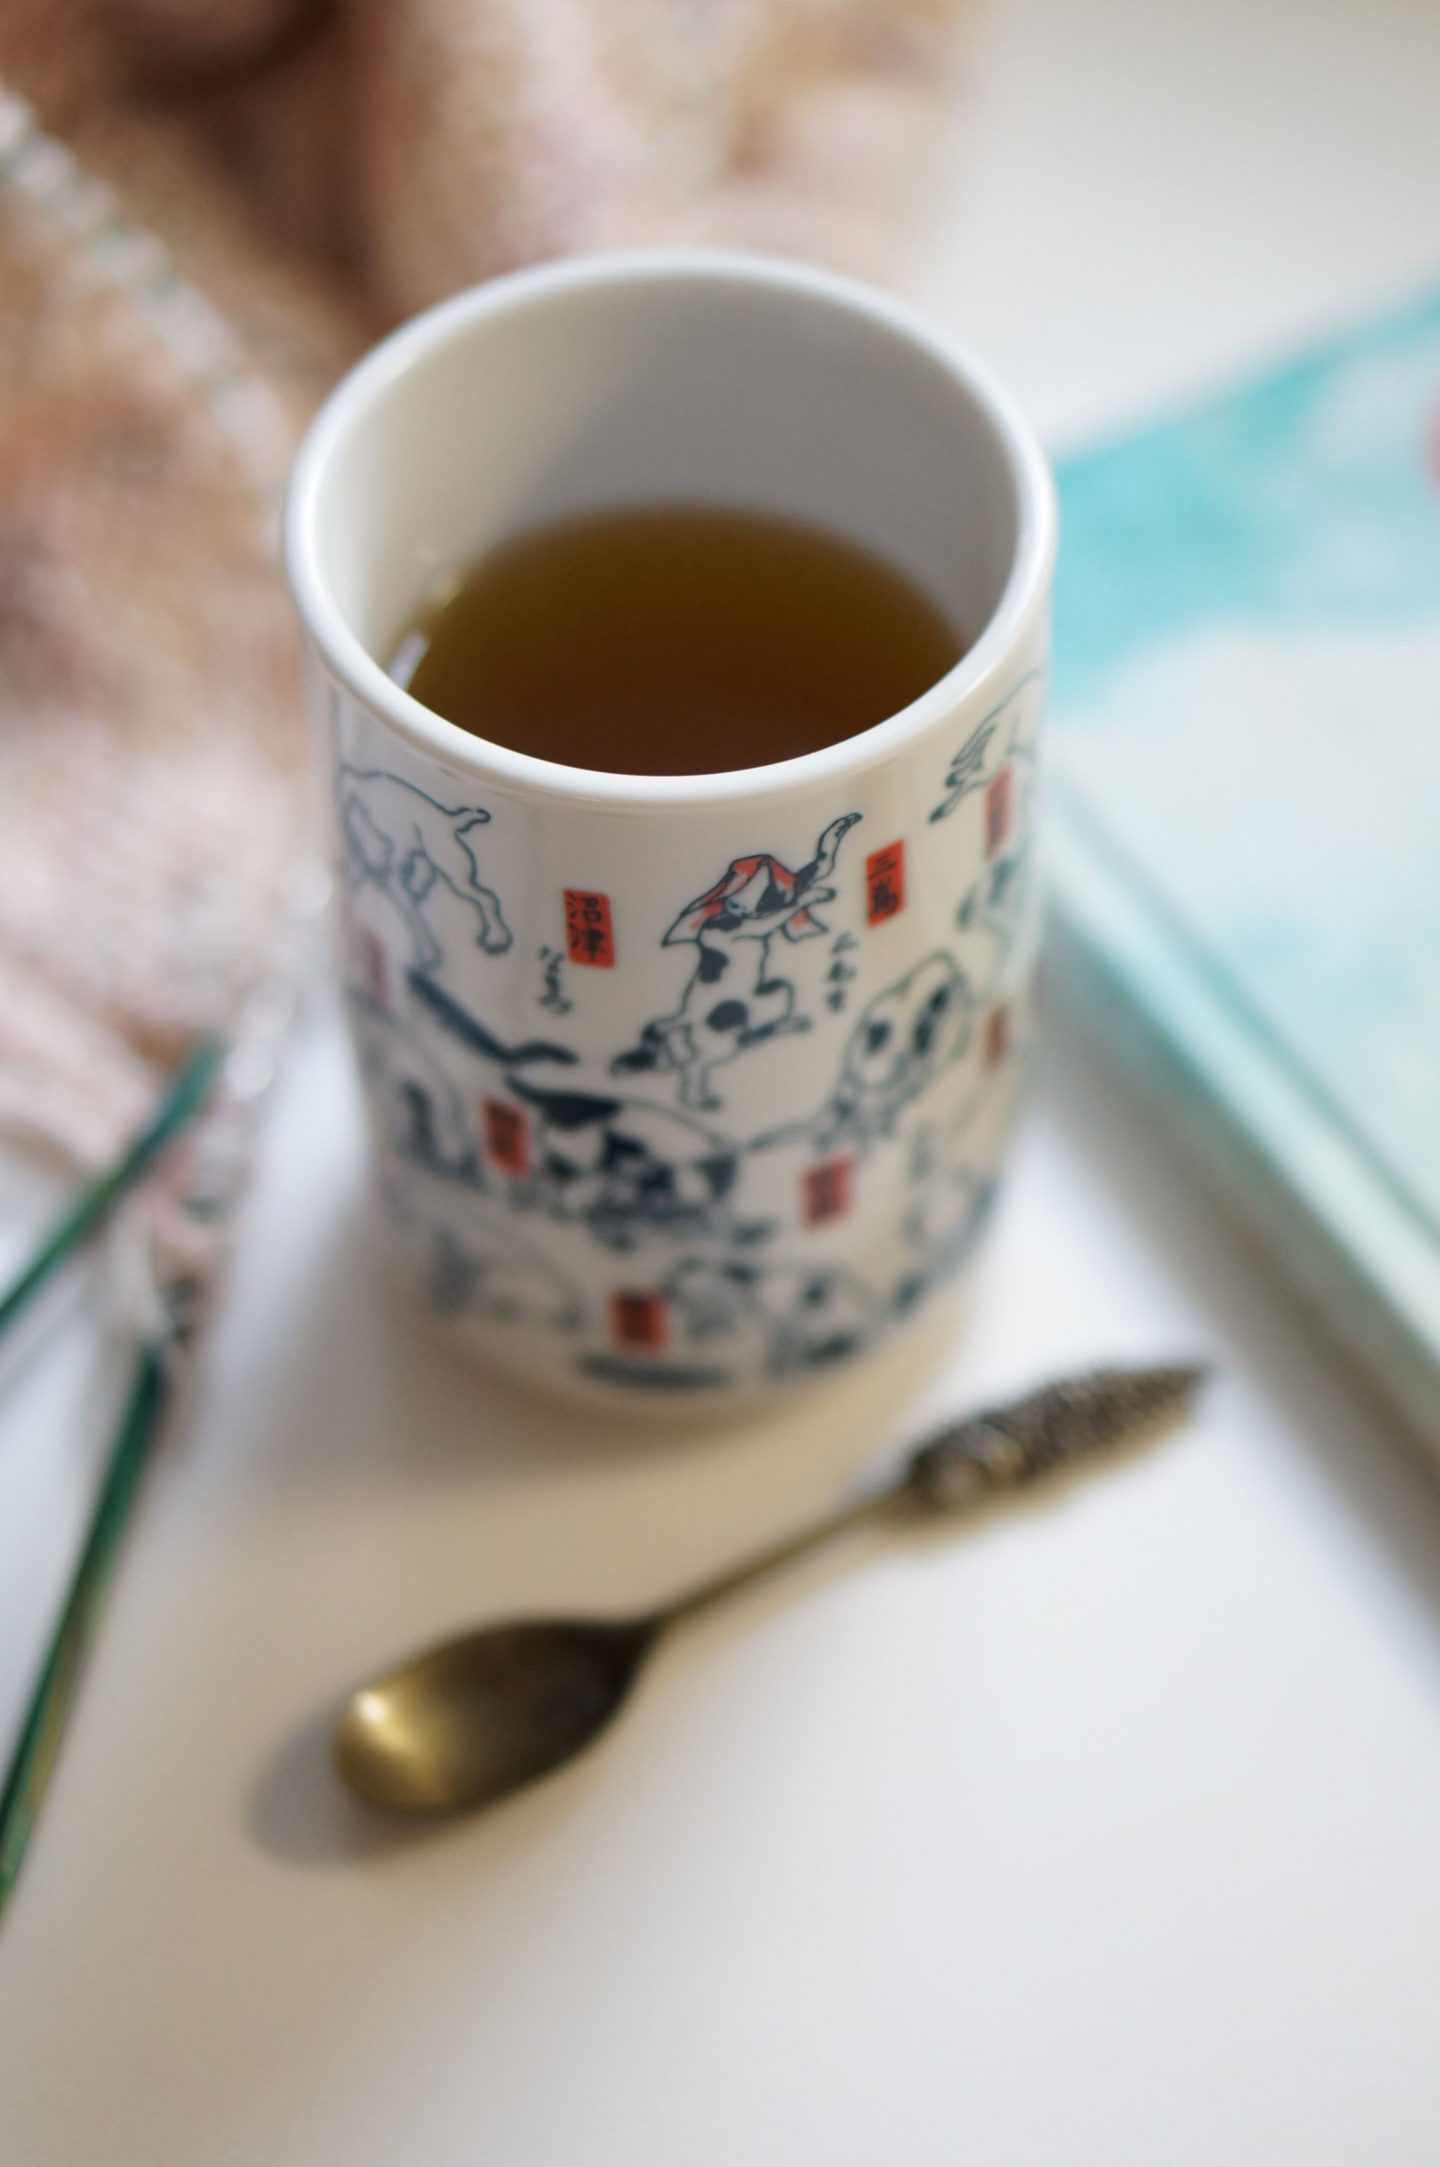 North Carolina blogger Rebecca Lately shares her yummy Celestial Tea collection, along with her night time tea routine. Read it for self care inspiration!